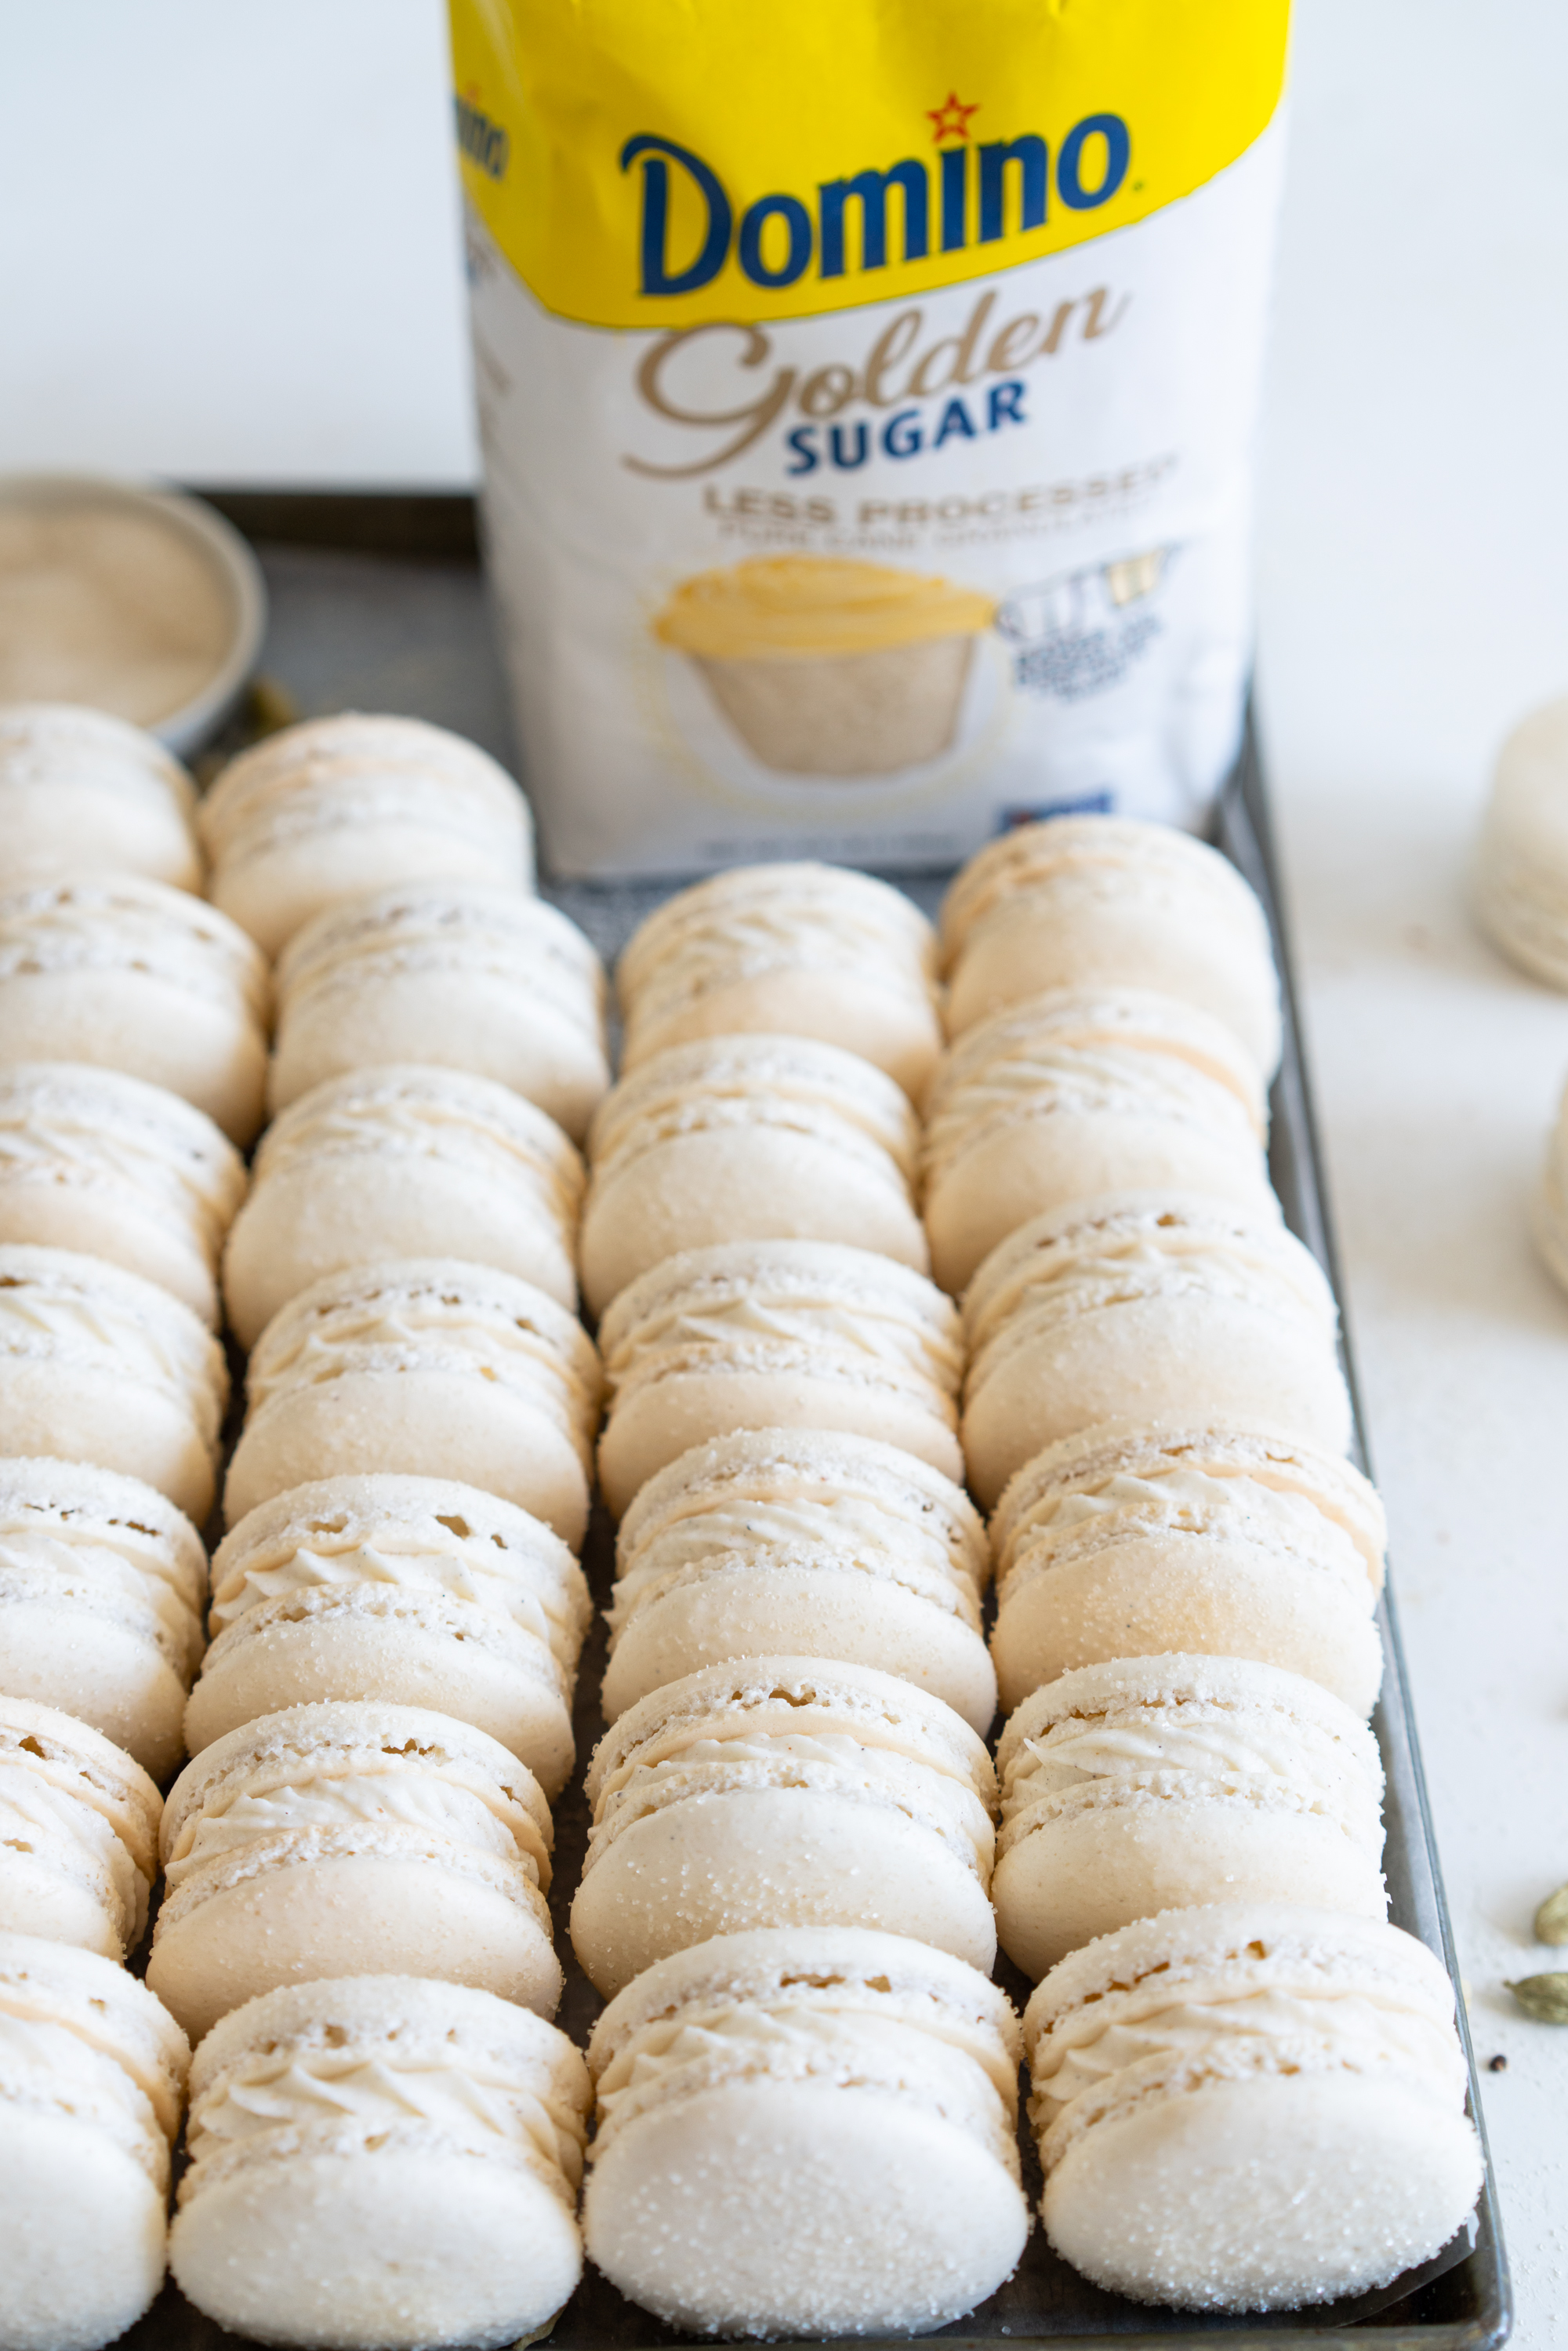 Golden Sugar Macarons with Cardamom Cream Cheese Filling. These French macarons are made with golden sugar, sprinkled with the sugar to give them a sparkly top, and filled with a smooth cardamom cream cheese filling. These are an easy gluten free treat, and this is a great go-to macaron recipe, filled with tips and tricks to help you master french macarons! #frenchmacarons #goldensugar #cardamomcreamcheese